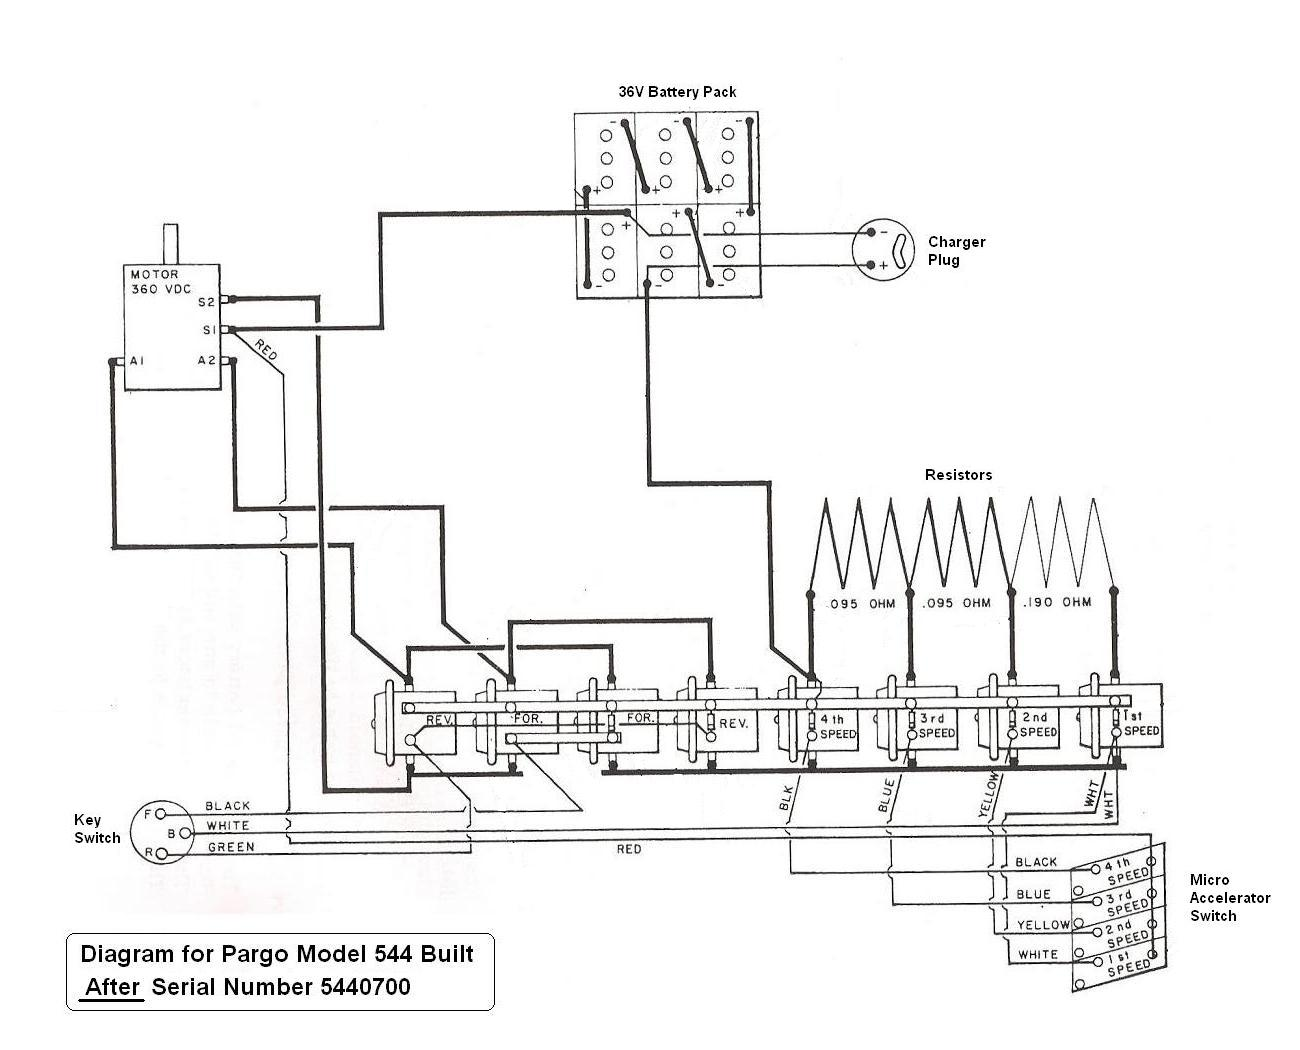 Melex Model 212 Golf Cart Wiring Diagram 36V Golf Cart